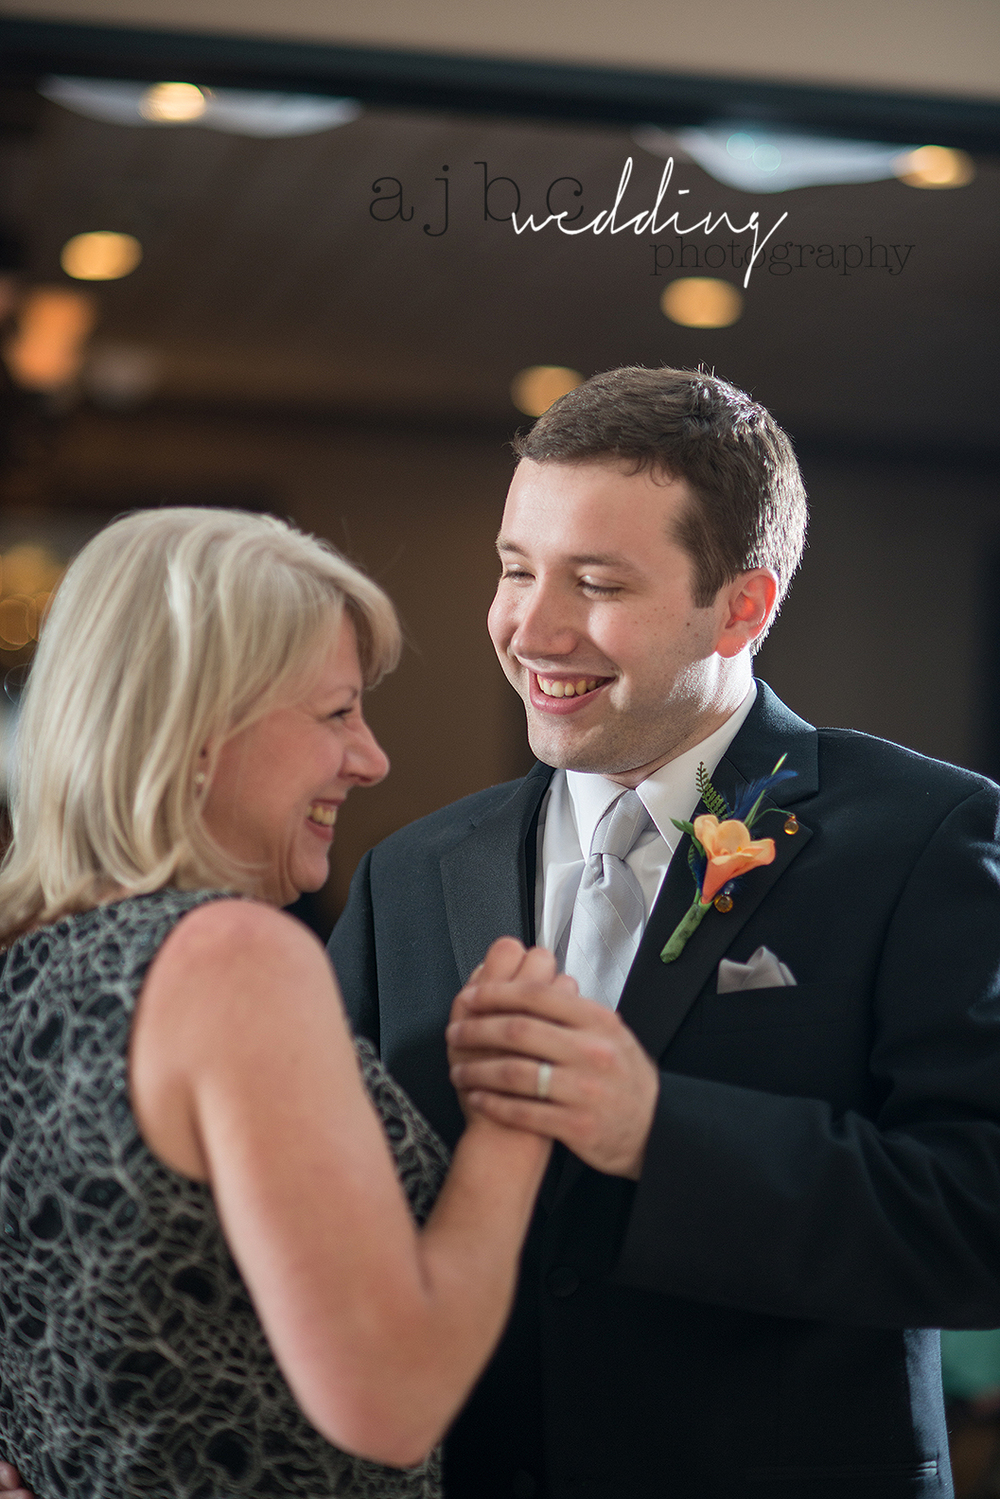 ajbcphotography-port-huron-michigan-wedding-photographer-love-bride-groom-family-michigan-wedding-photographer-mother-son-dance.jpg